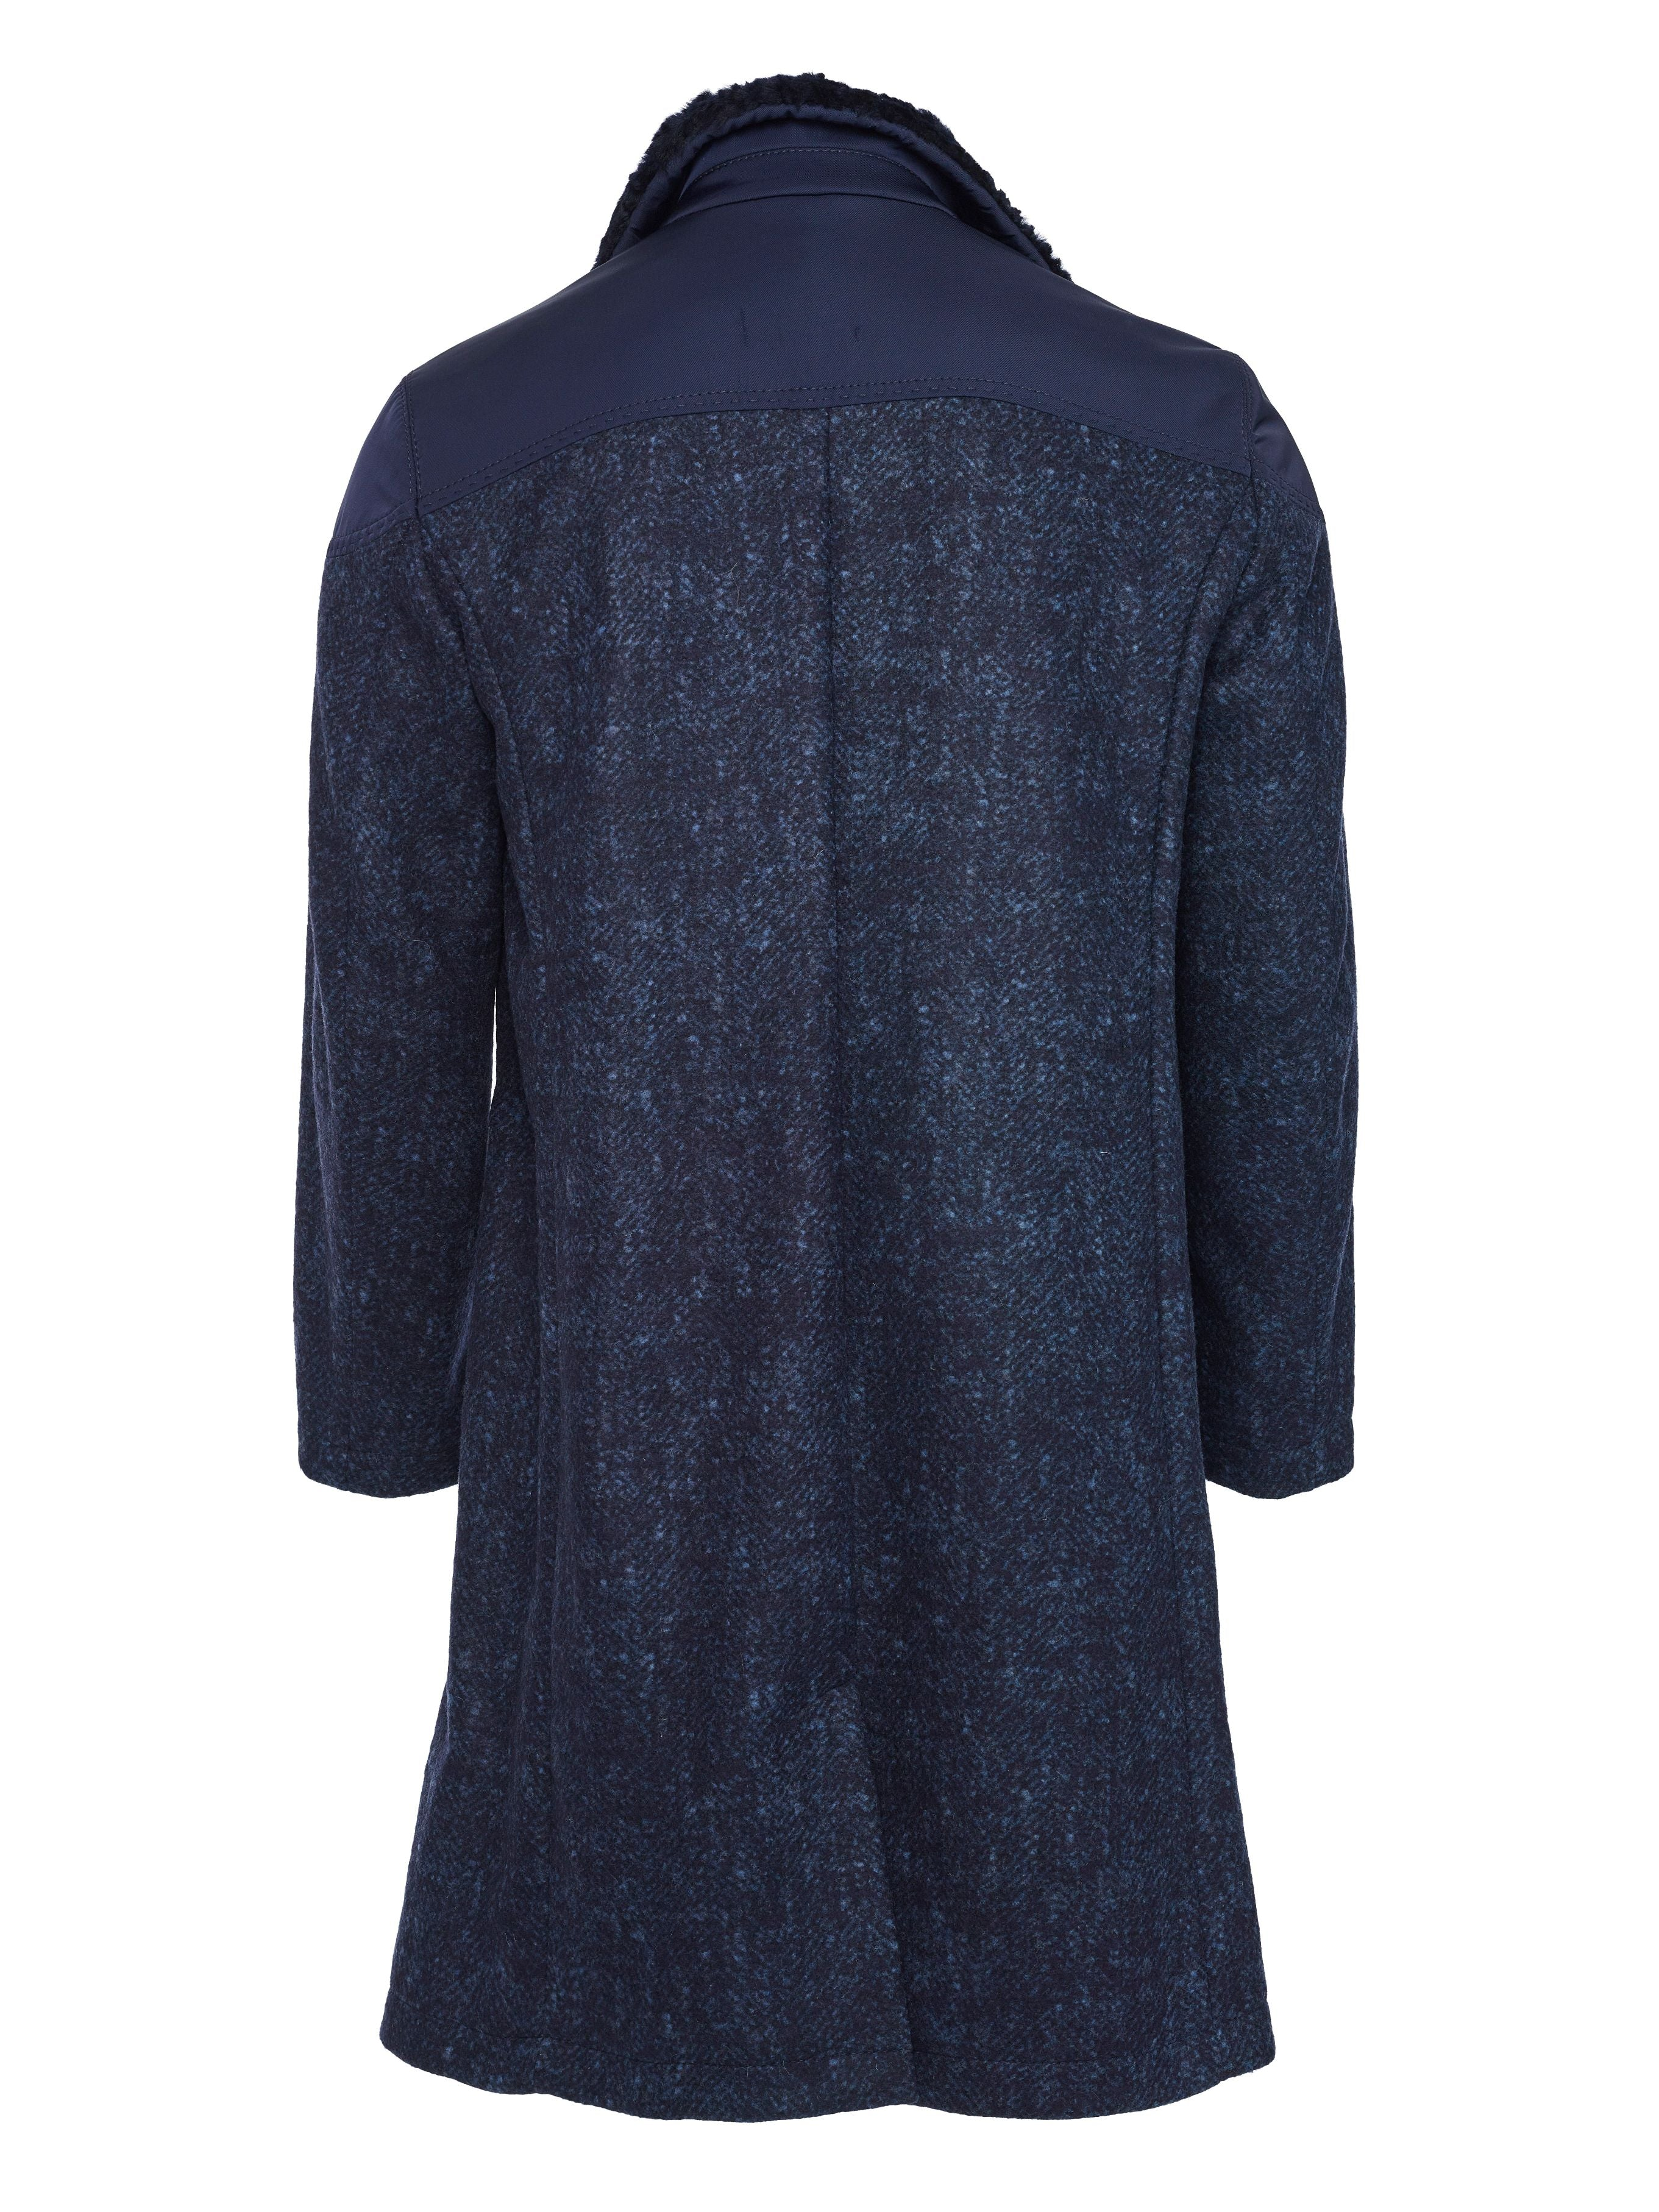 Back side baby alpaca body with Spanish shearling collar and high impact nylon shoulders